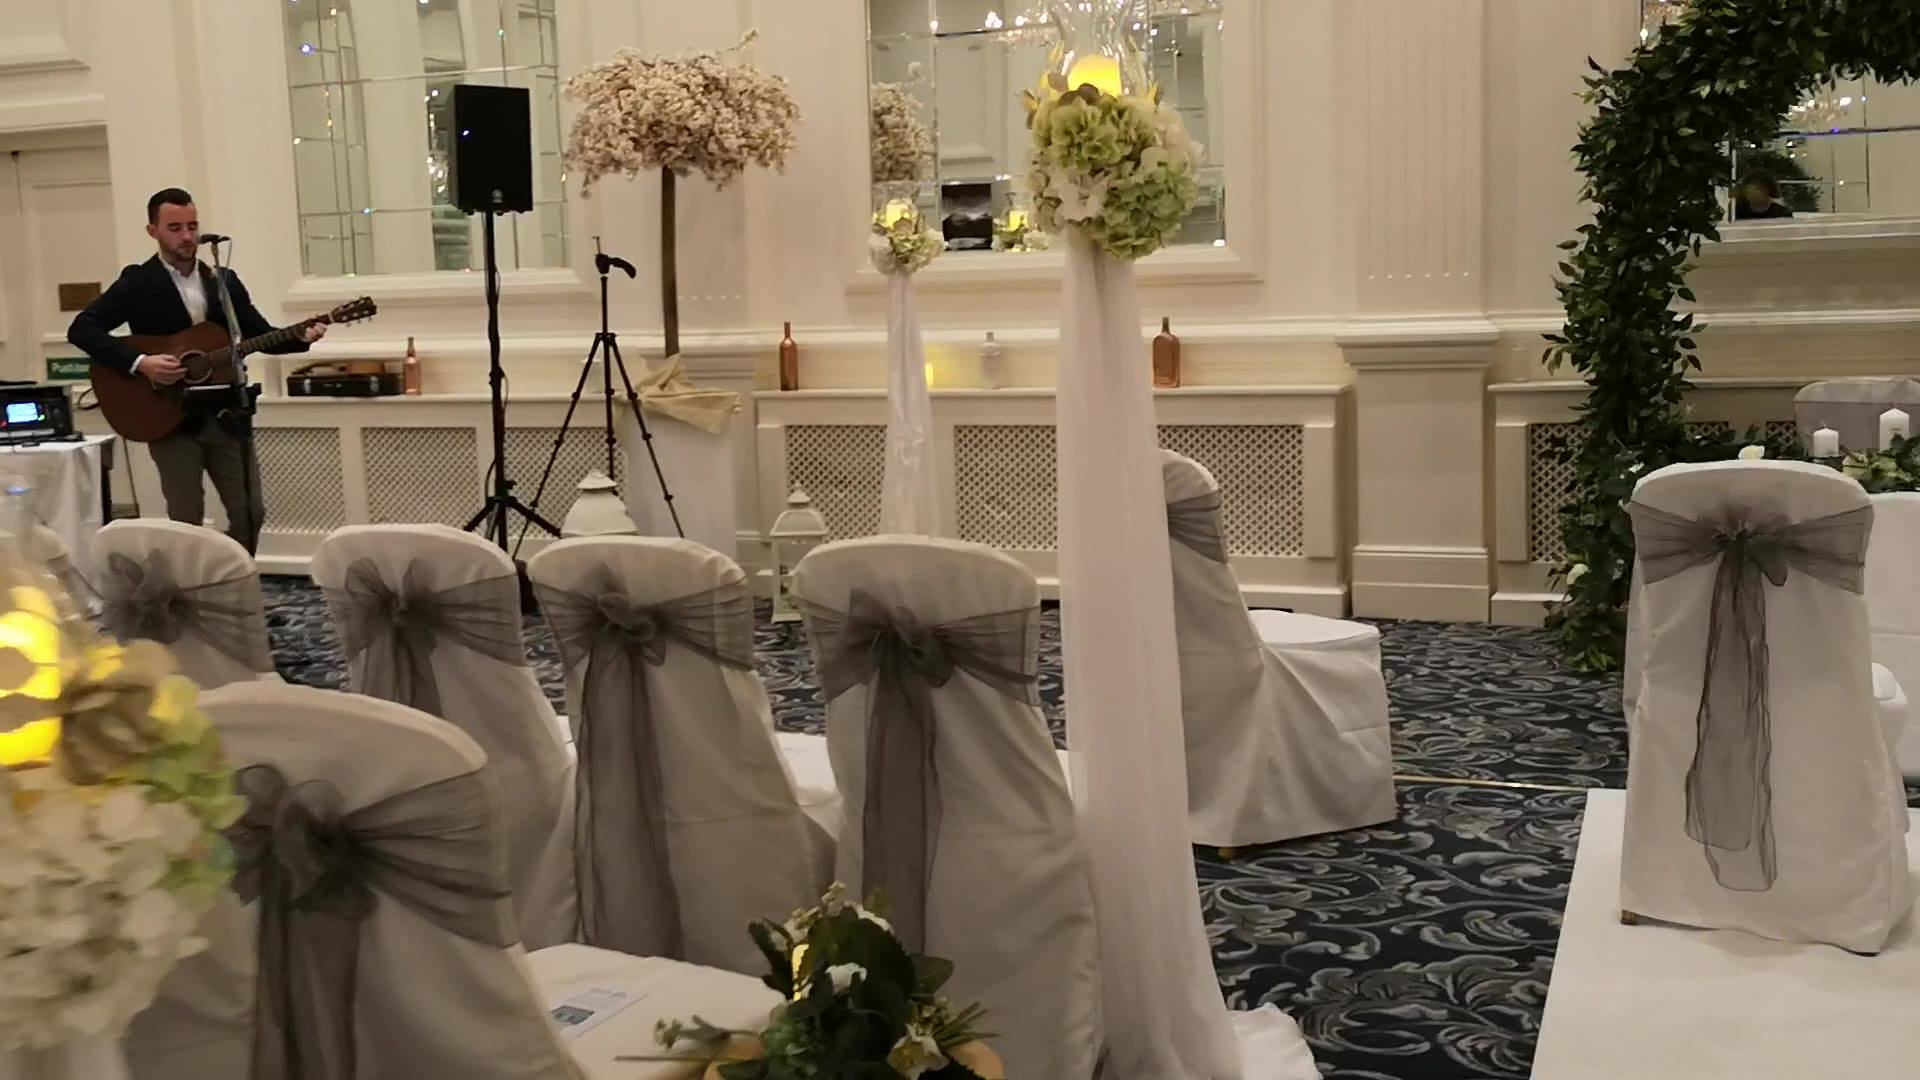 Today's Wedding In the stunning Hotel Meyrick Galway, Congrats John & Joan ❤️❤️❤️, Music by https://www.facebook.com/thesixtyfivemusic/ fantastic voice 🎶🎶🎶